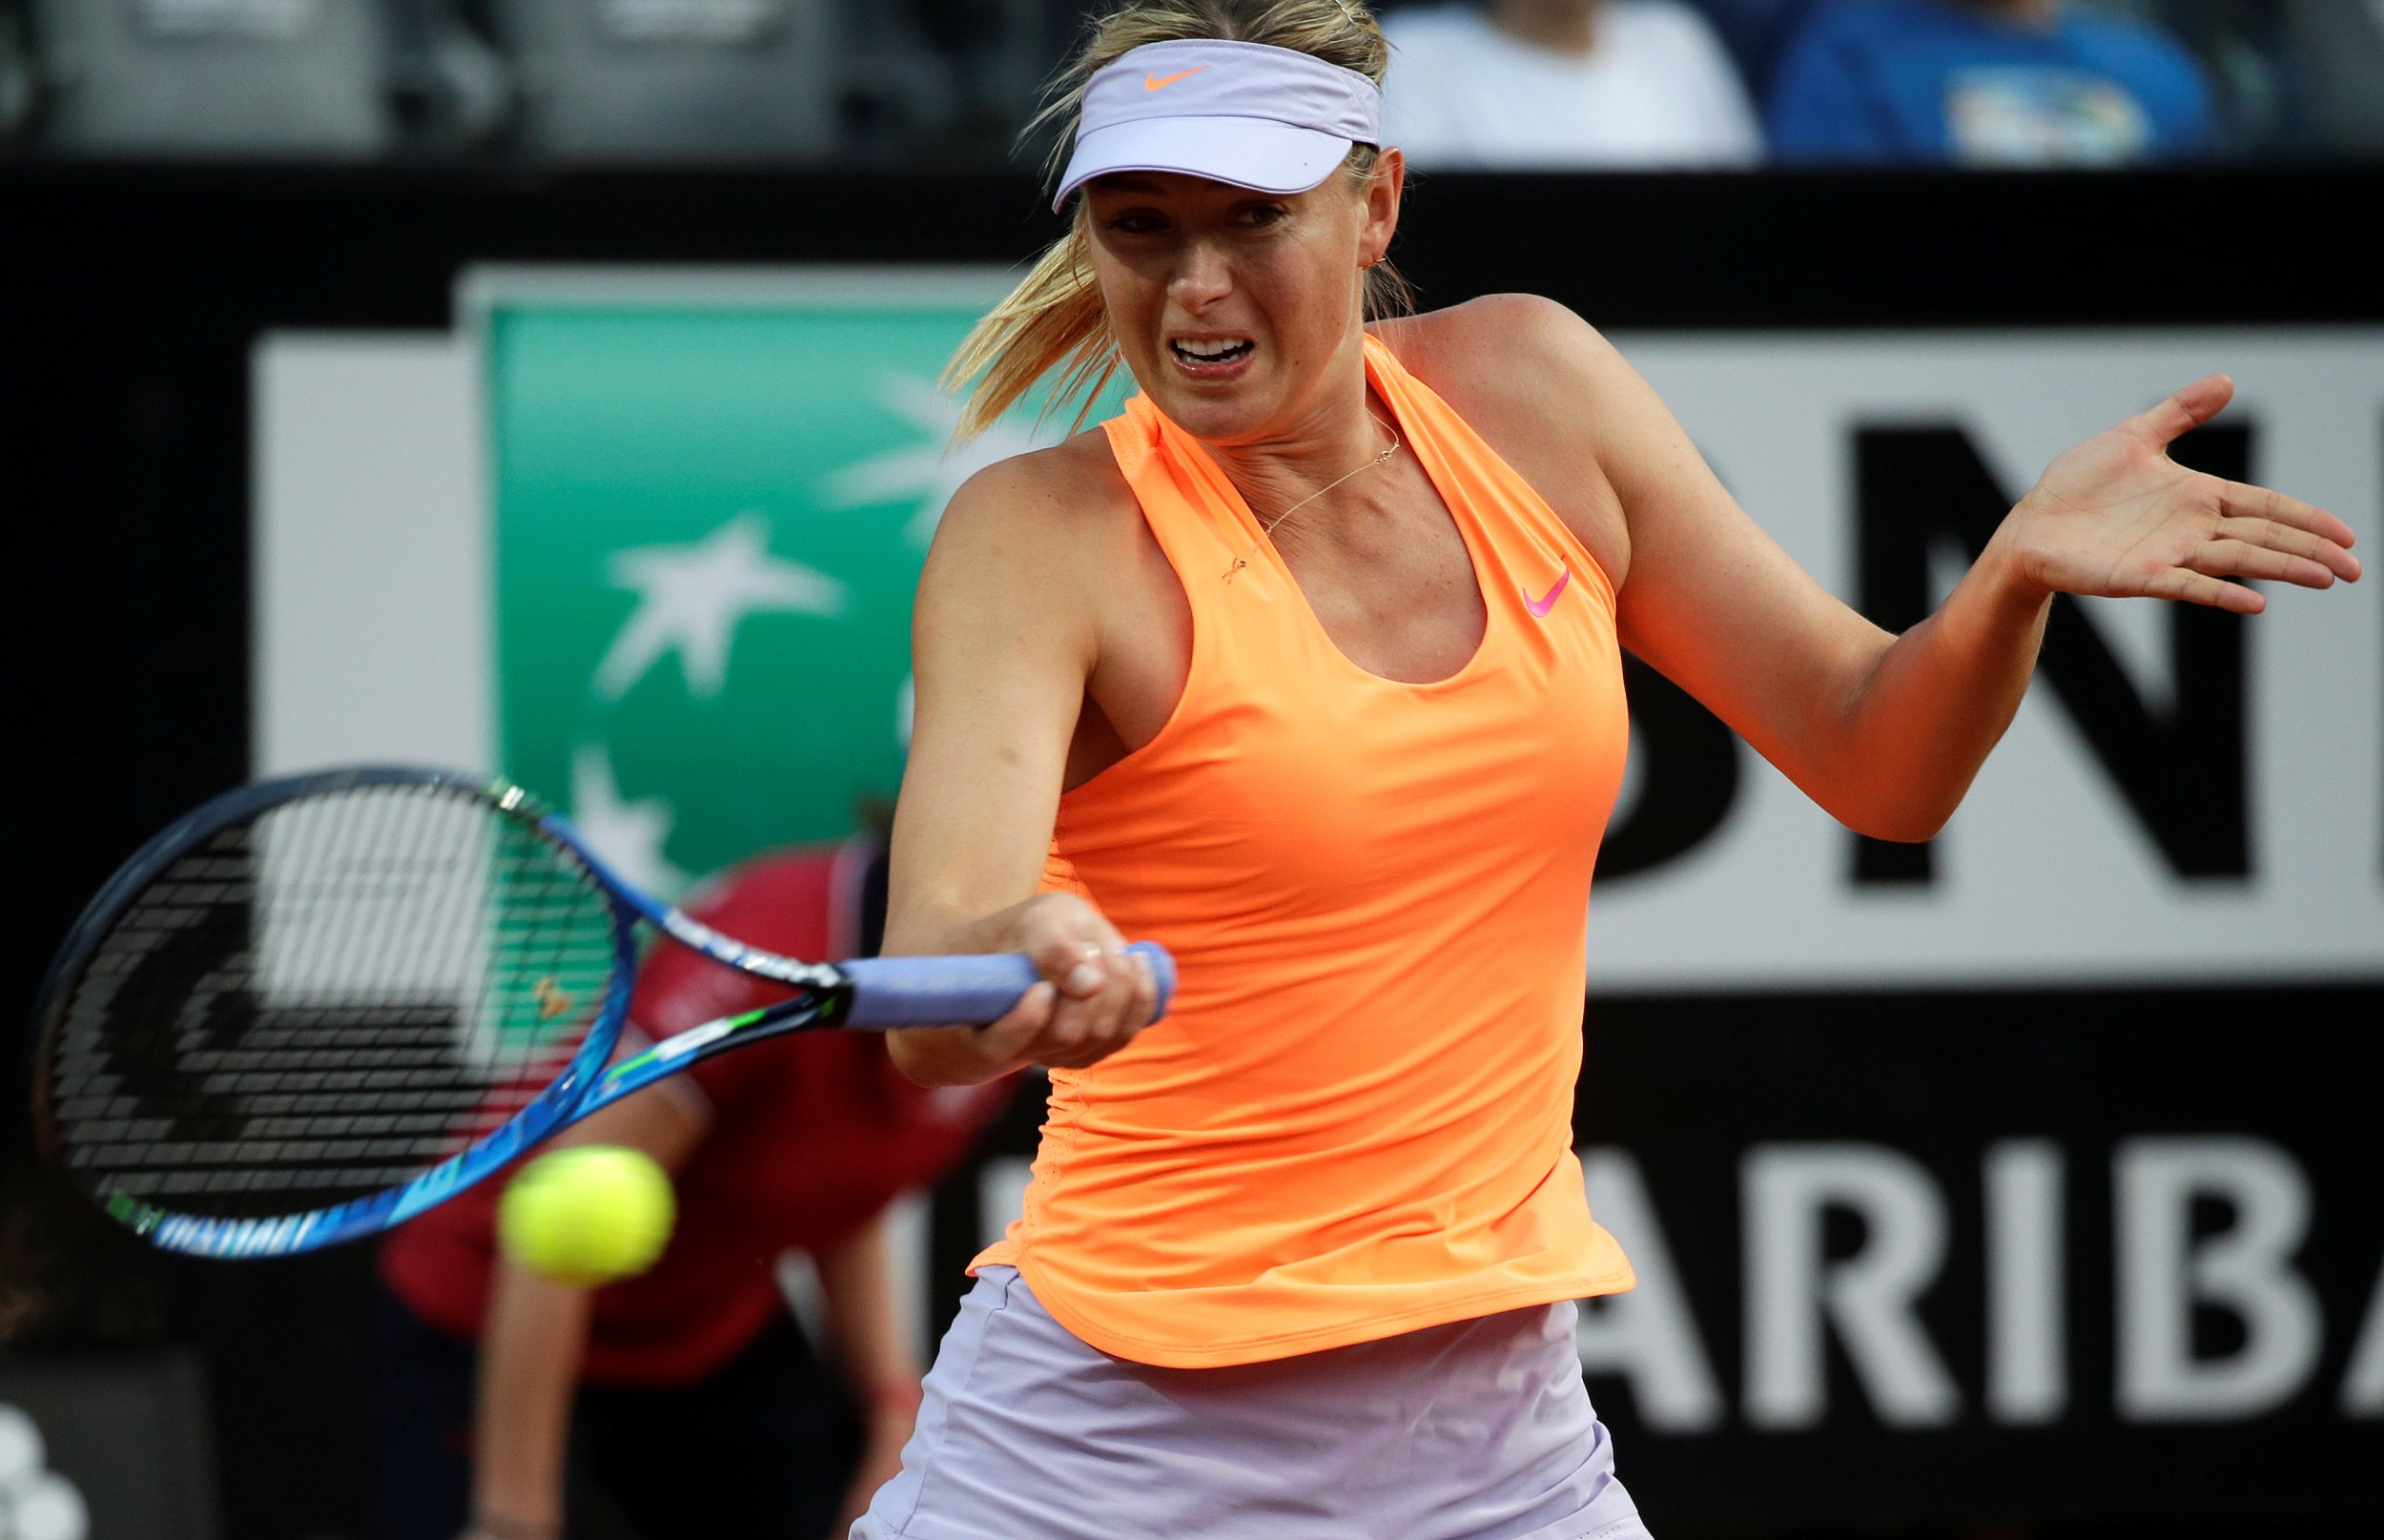 five-times-grand-slam-winner-maria-sharapova